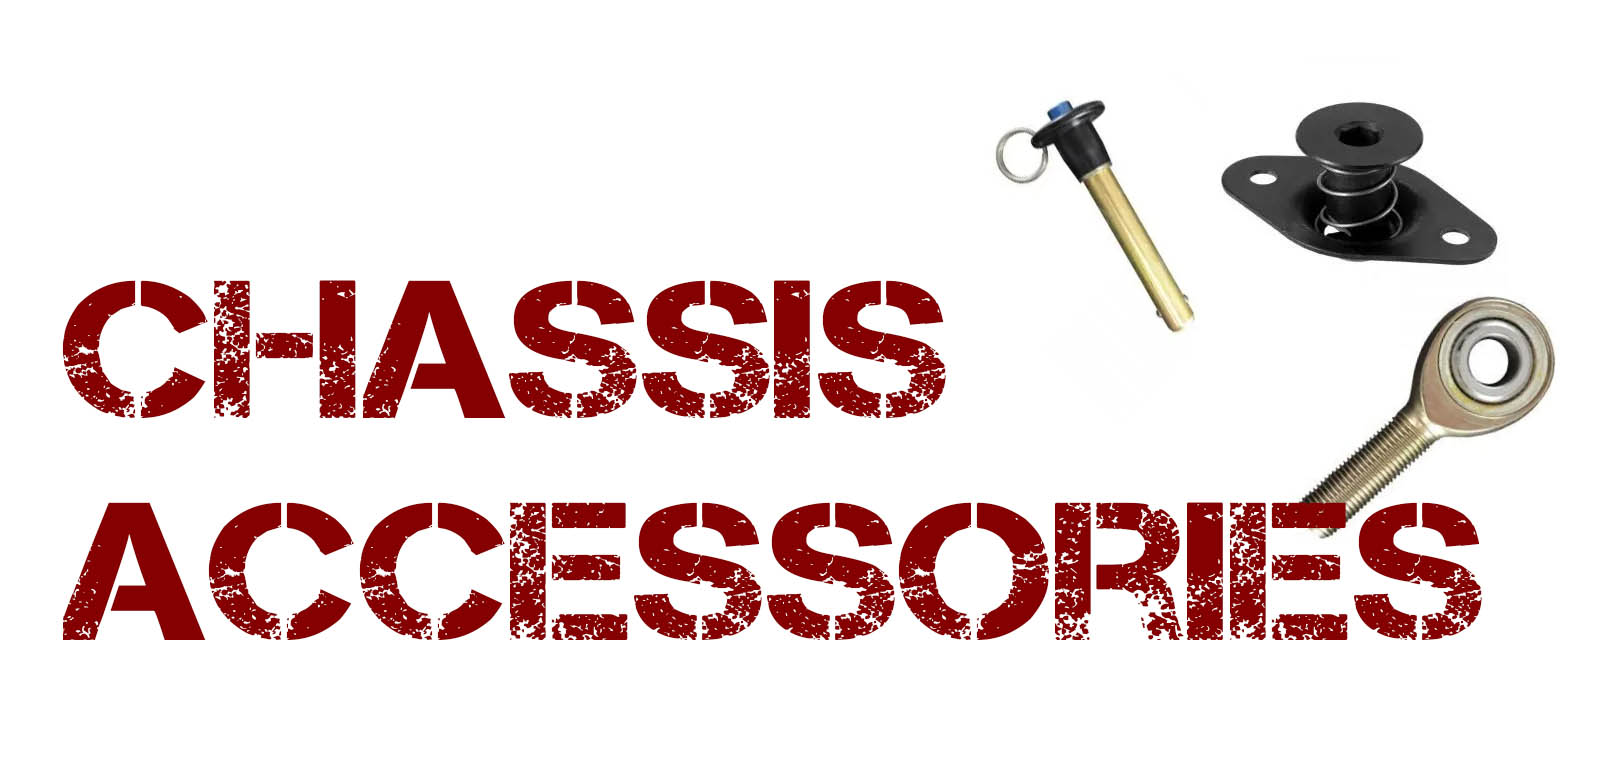 Chassis Accessories